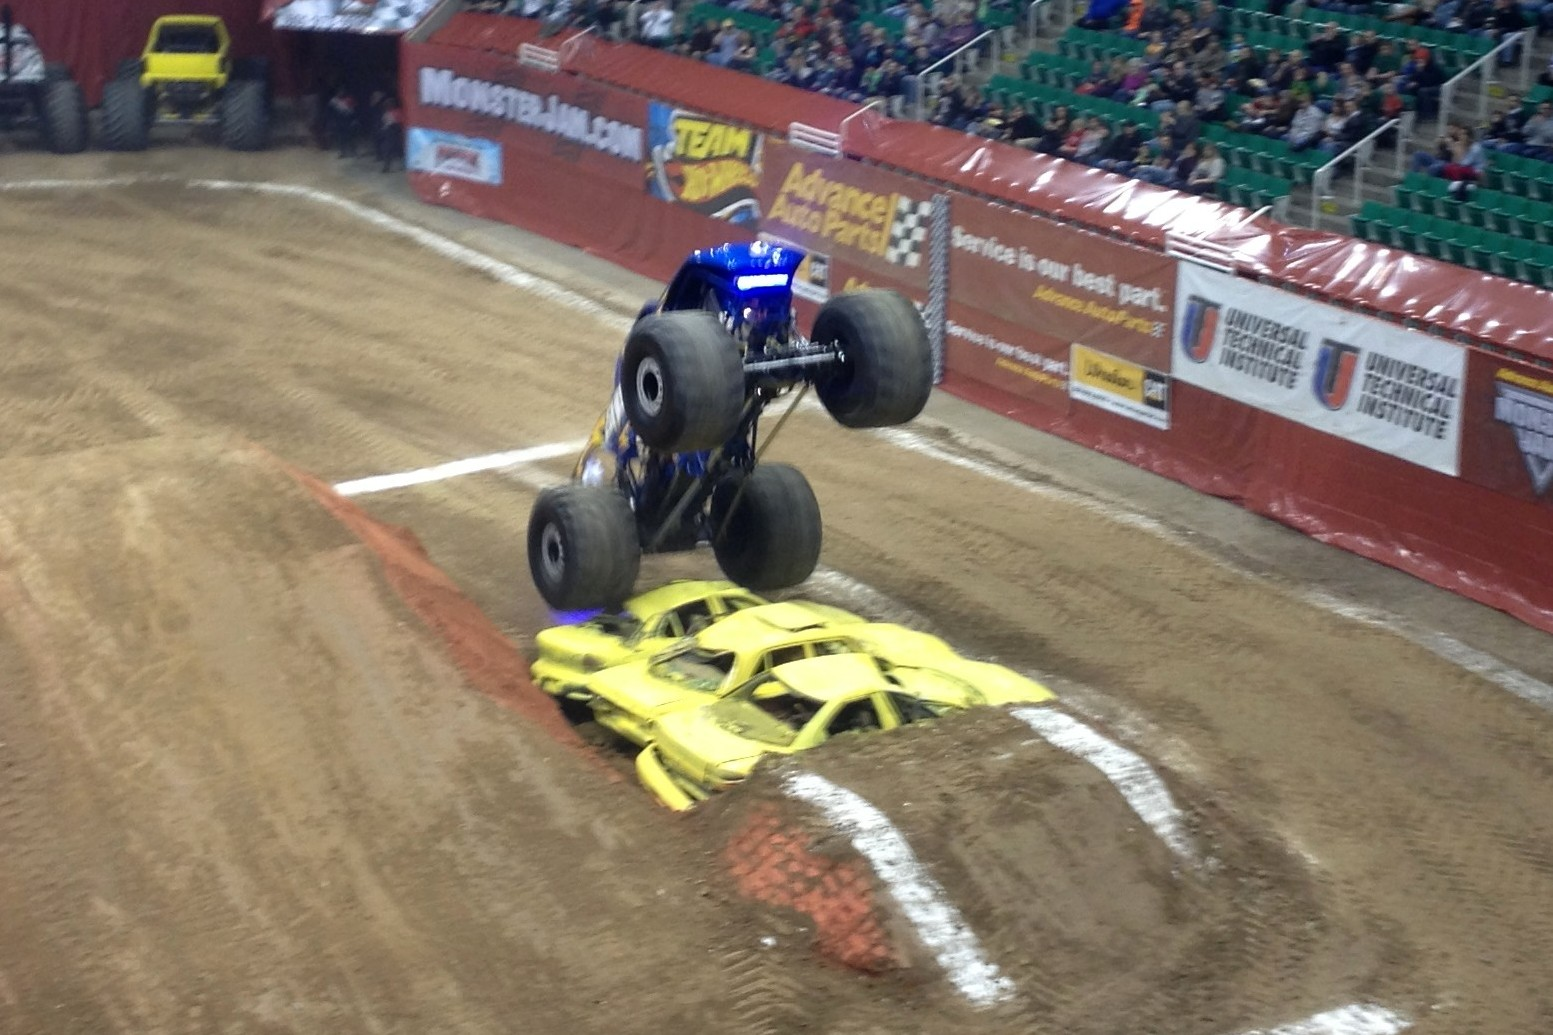 Mar 23,  · monster jam®, monster jam world finals®, triple threat series™, united states hot rod association®, ushra®, afterburner®, backwards bob®, blue thunder®, captain's curse®, crusader®, dragon's breath®, earthshaker™, el diablo®, el toro loco®, grave digger®, grave digger the legend®, grinder®,maximum destruction®, max-d.